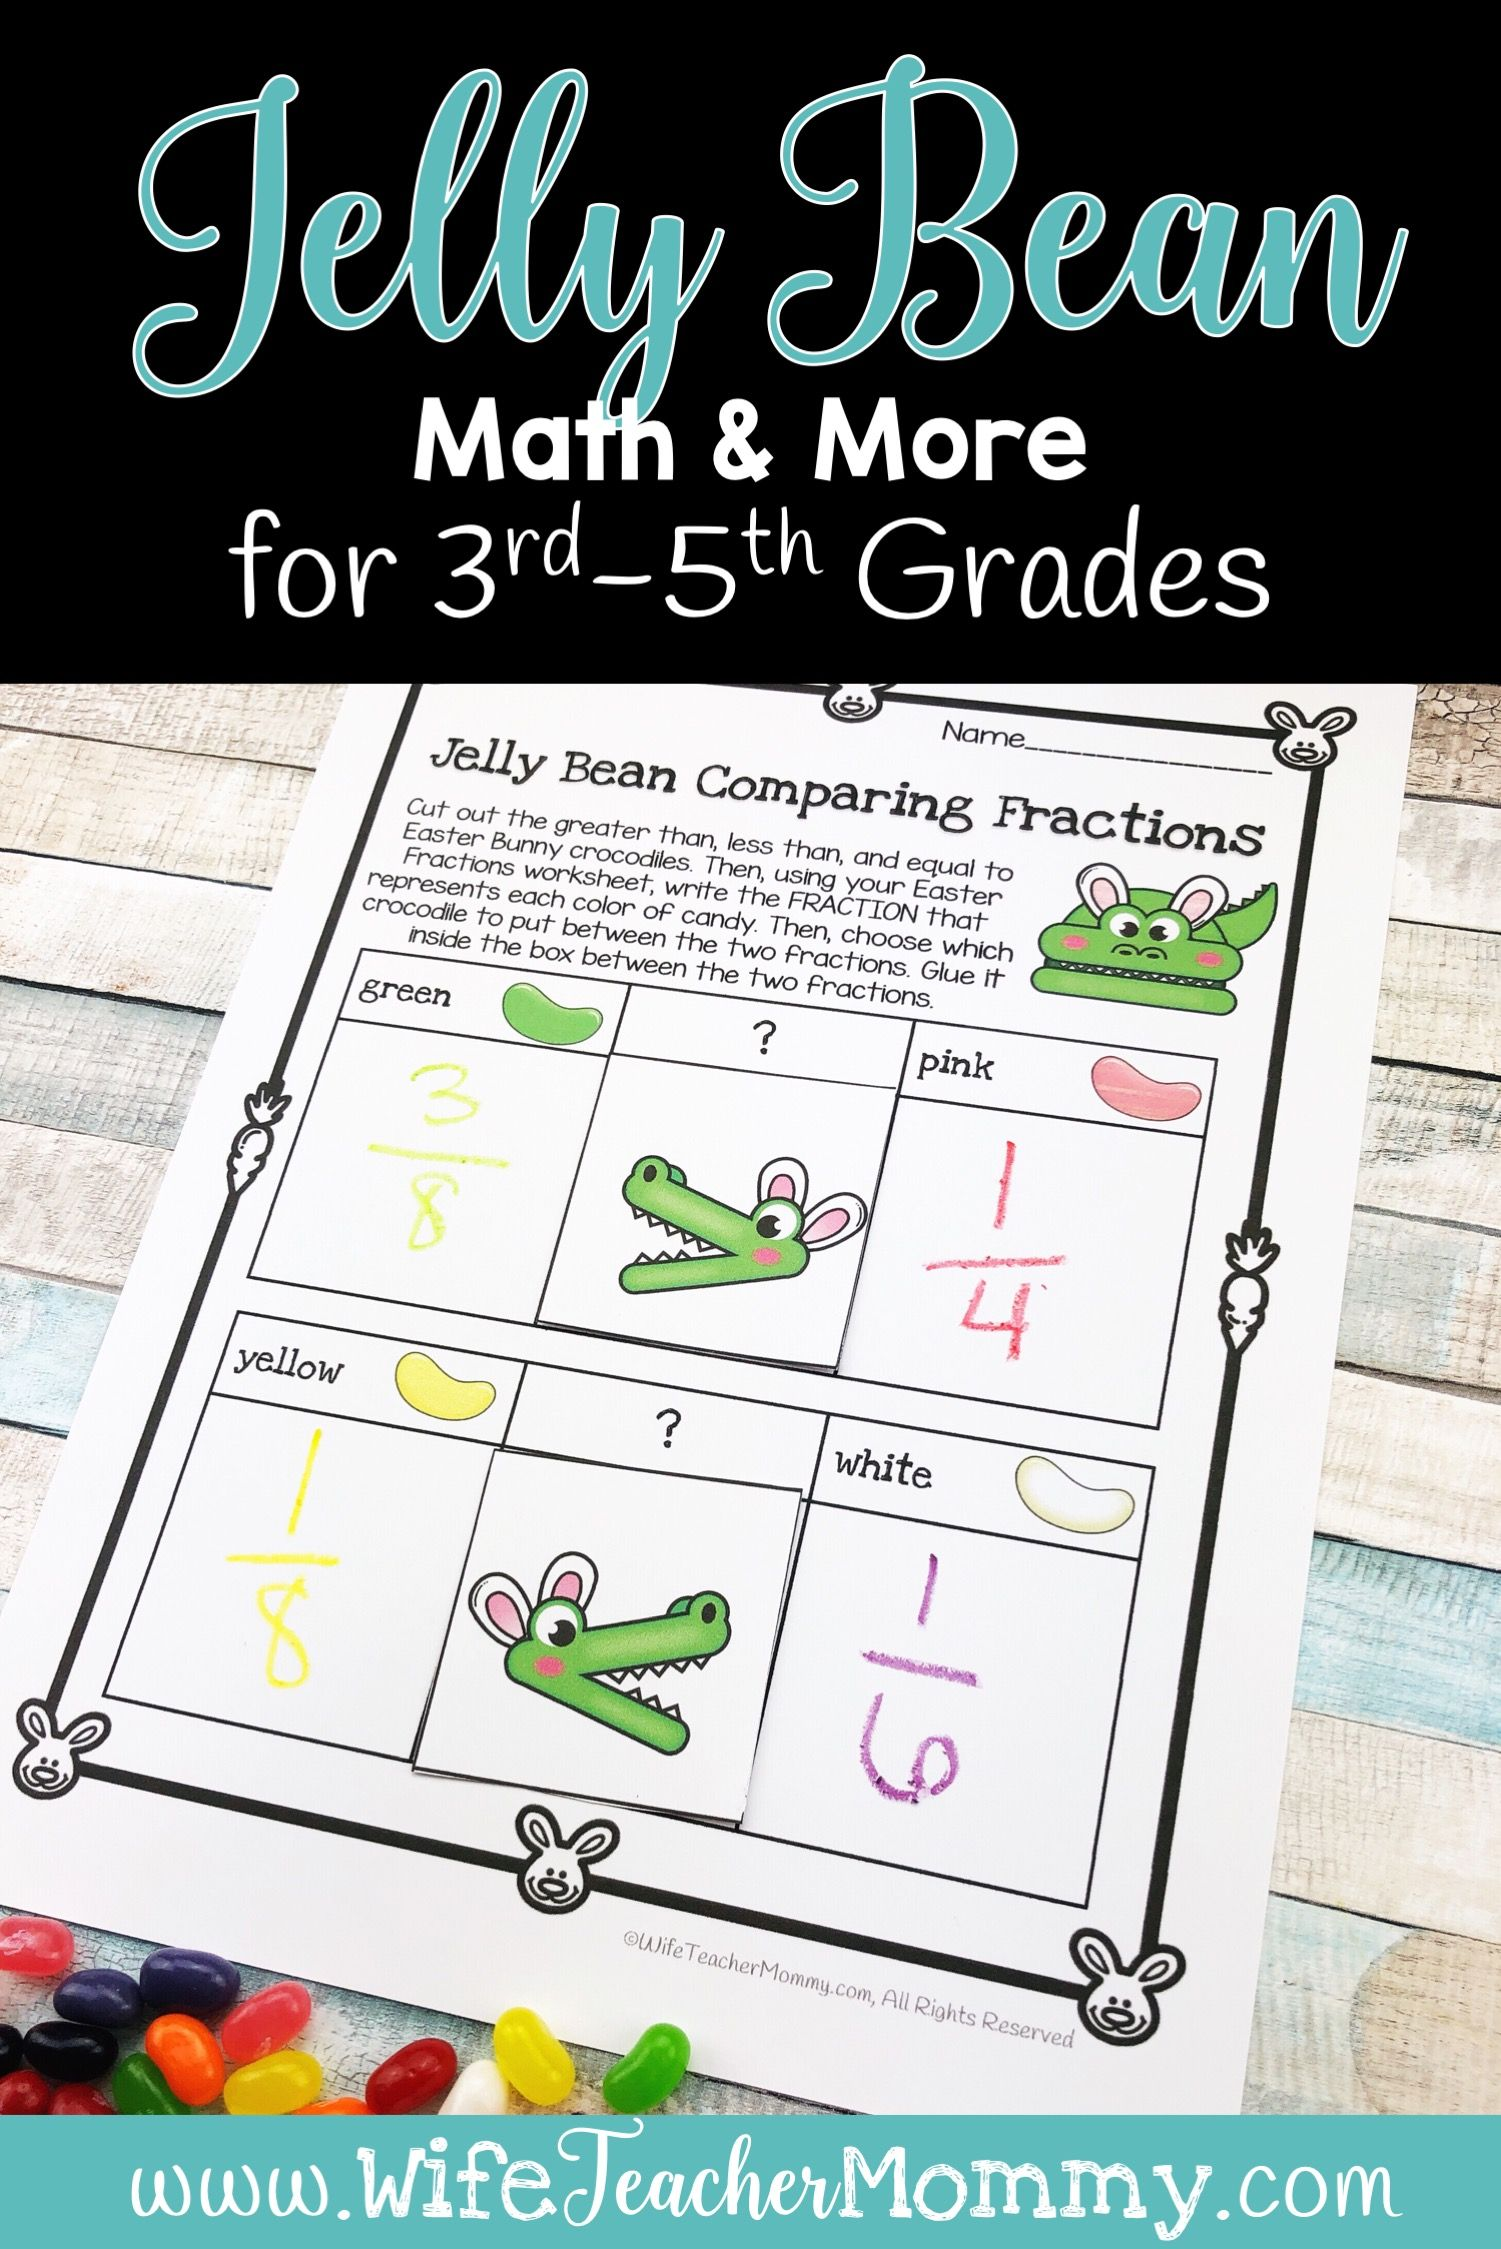 Easter Jelly Bean Math Amp More For 3rd 4th And 5th Grades